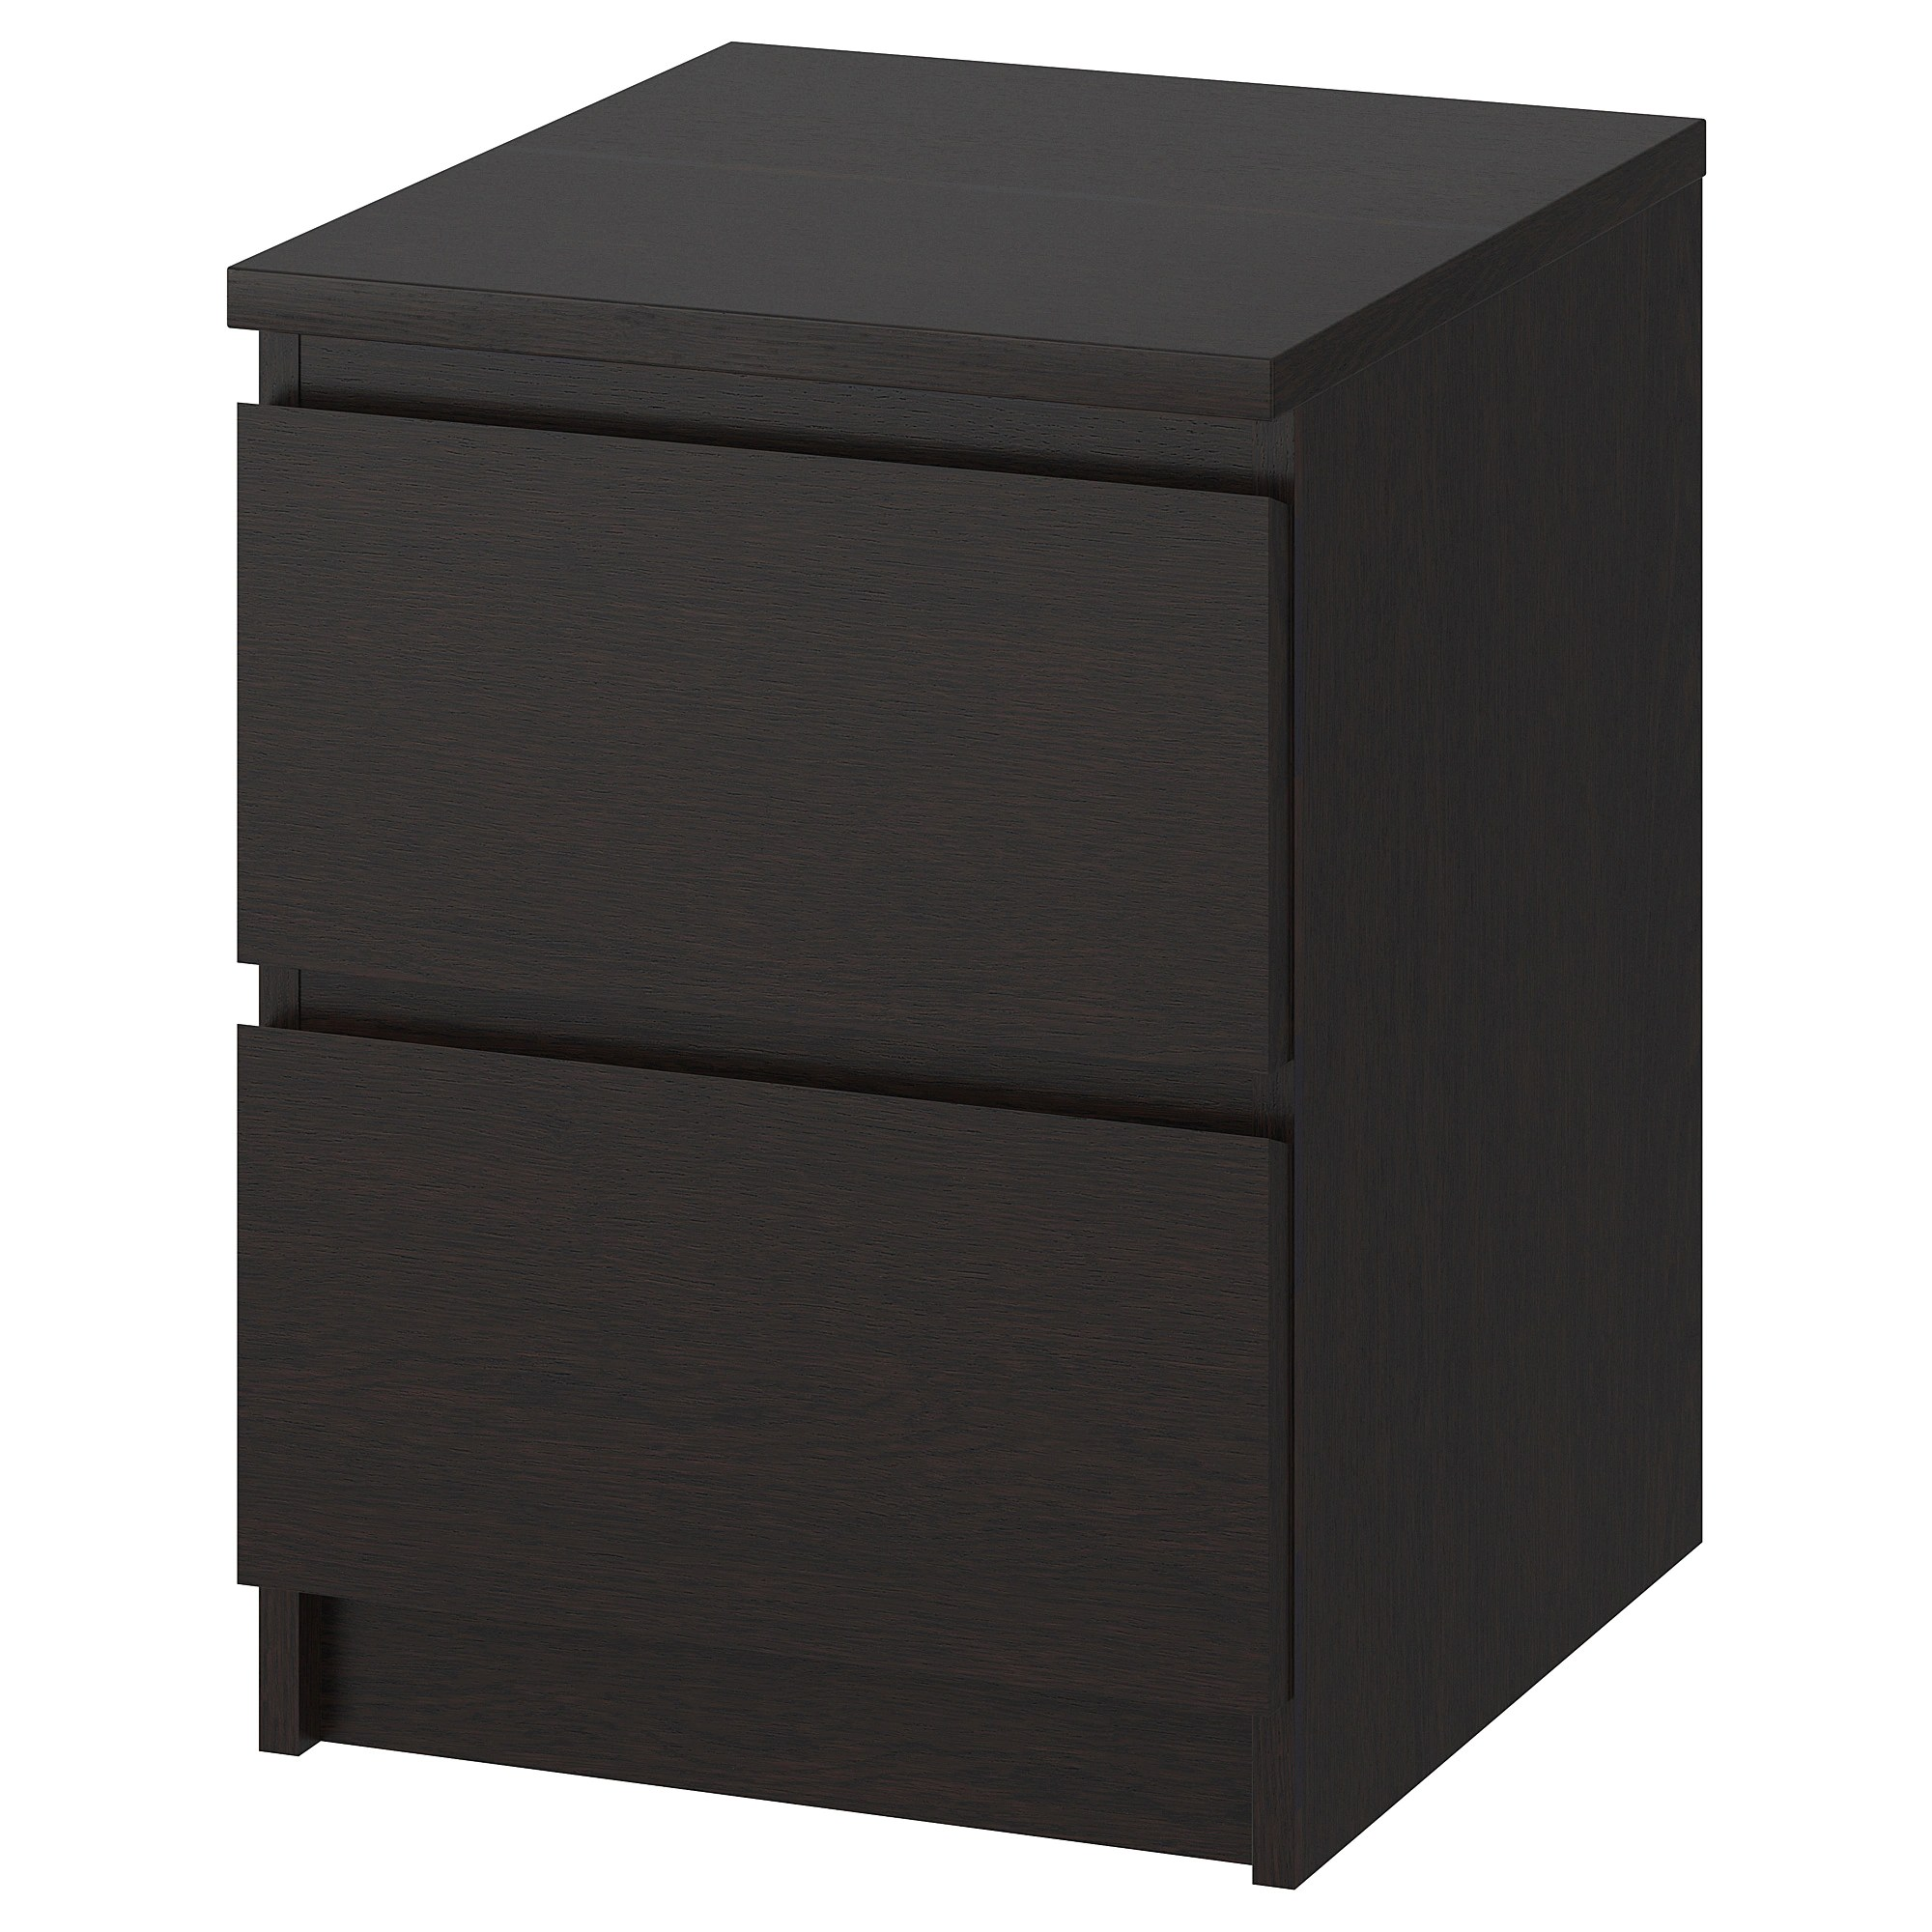 Ikea Malm Kommode Youtube 2 Drawer Chest Malm Black Brown